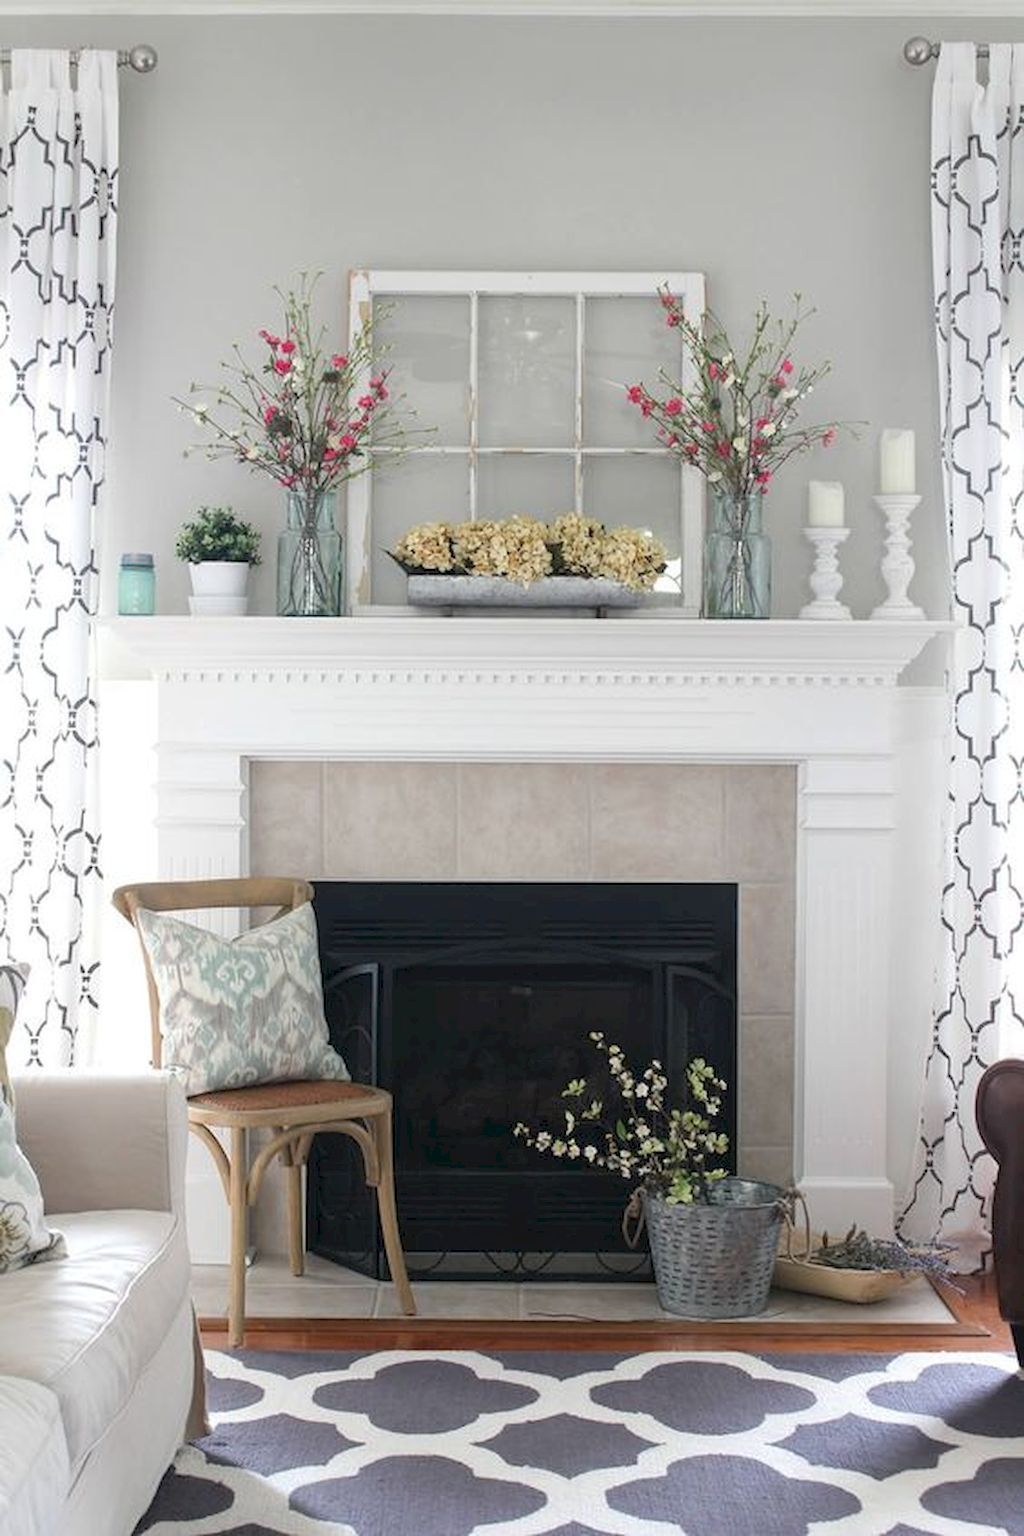 Gogeous Apartment Fireplace Decor Ideas 6 Farmhouse Decor Living Room Farm House Living Room Decor